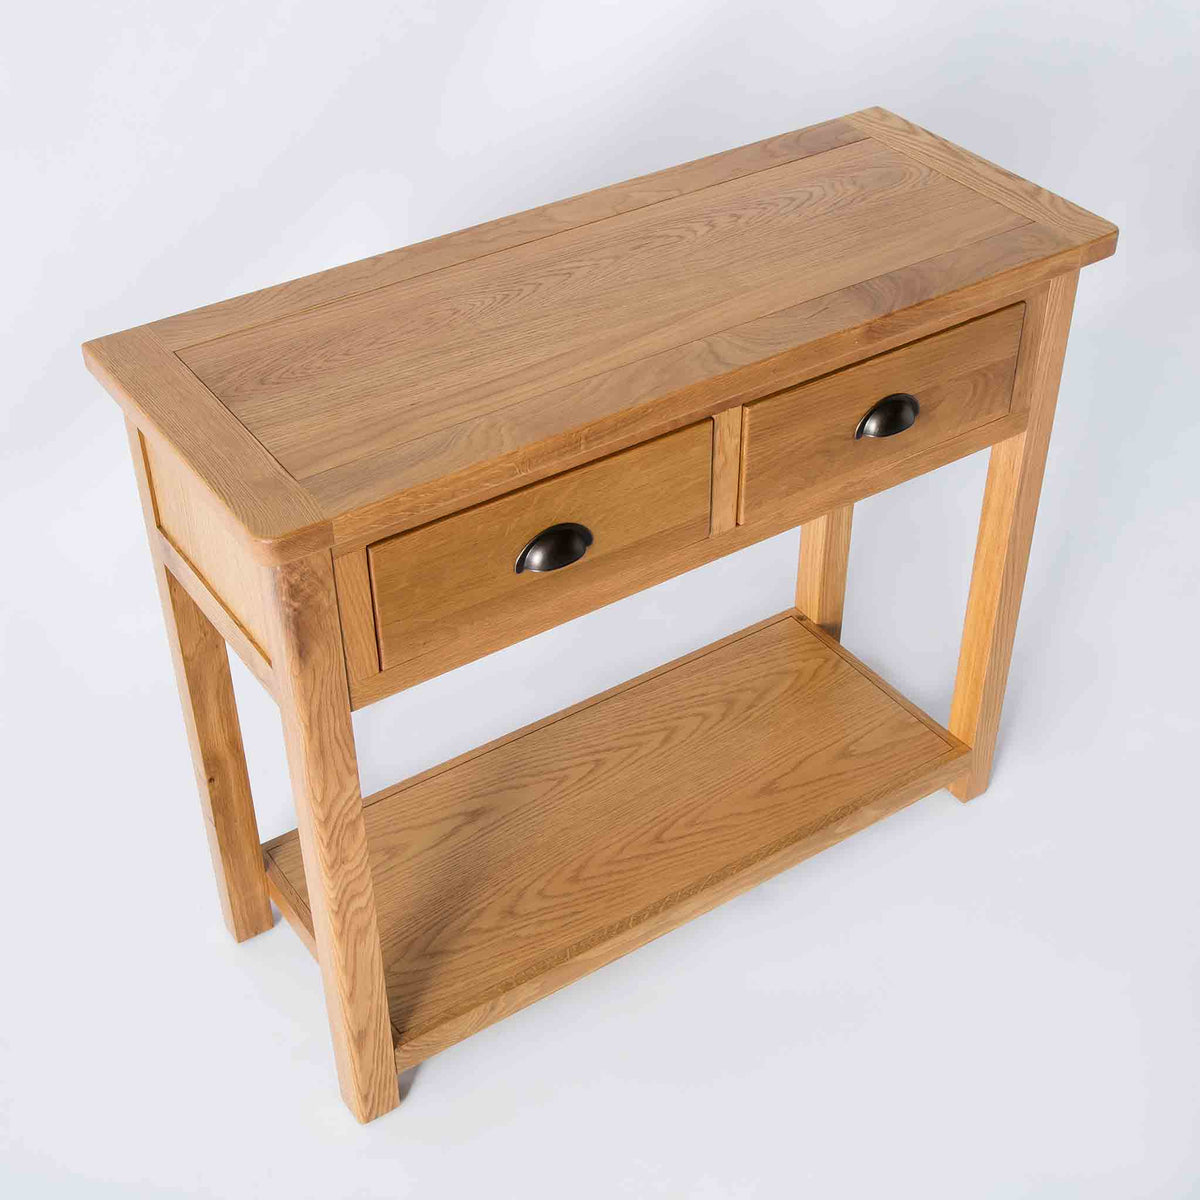 top side view of the the Roseland Oak Console Table with 2 Drawers